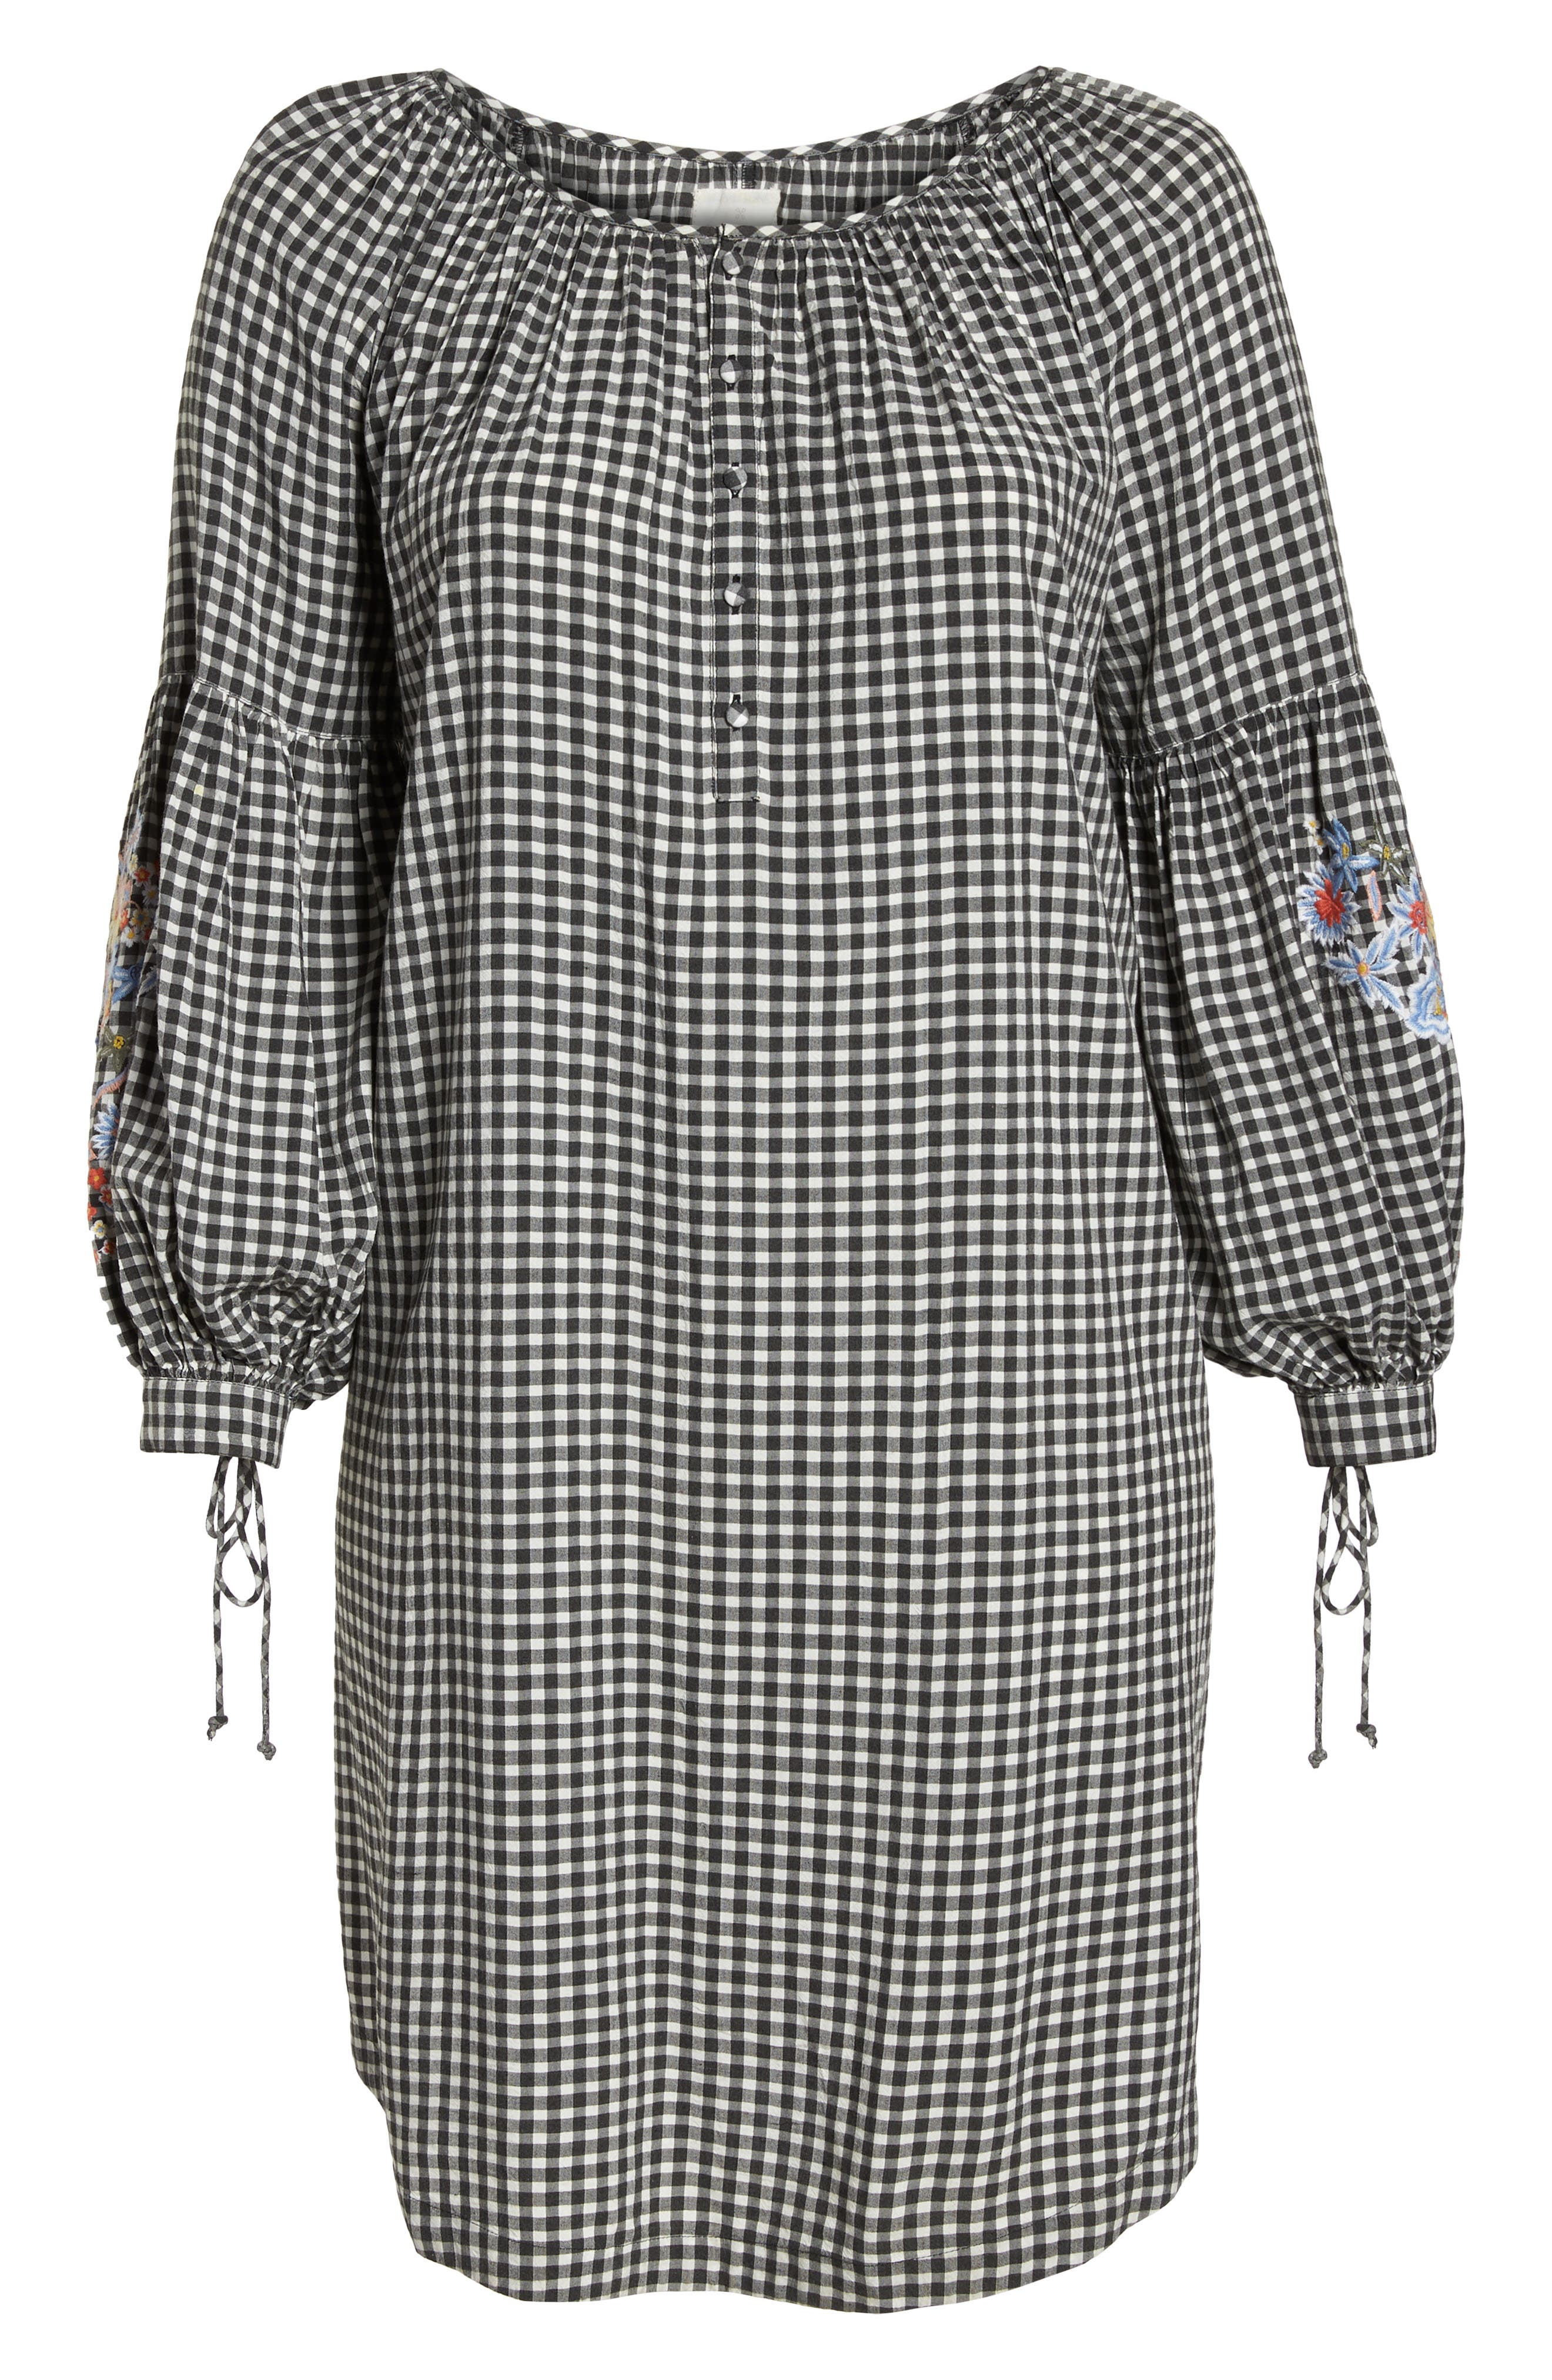 Embroidered Puff Sleeve Gingham Shift Dress,                             Alternate thumbnail 8, color,                             Black-White Gingham